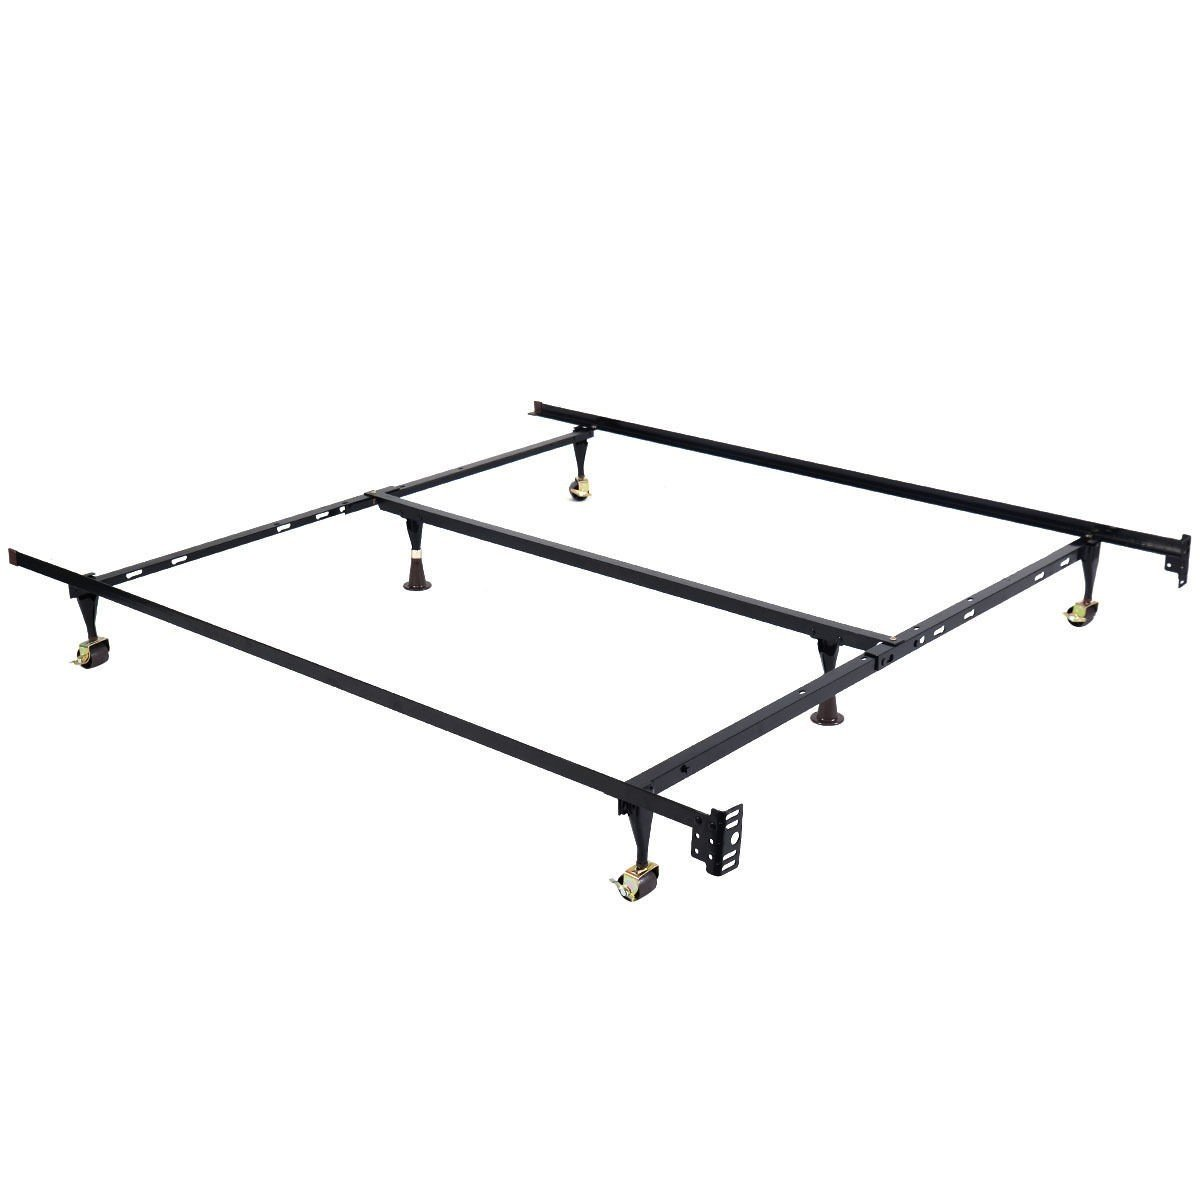 Apontus Metal Bed Frame Adjustable Queen Full Twin Size W/Center Support by Apontus (Image #3)